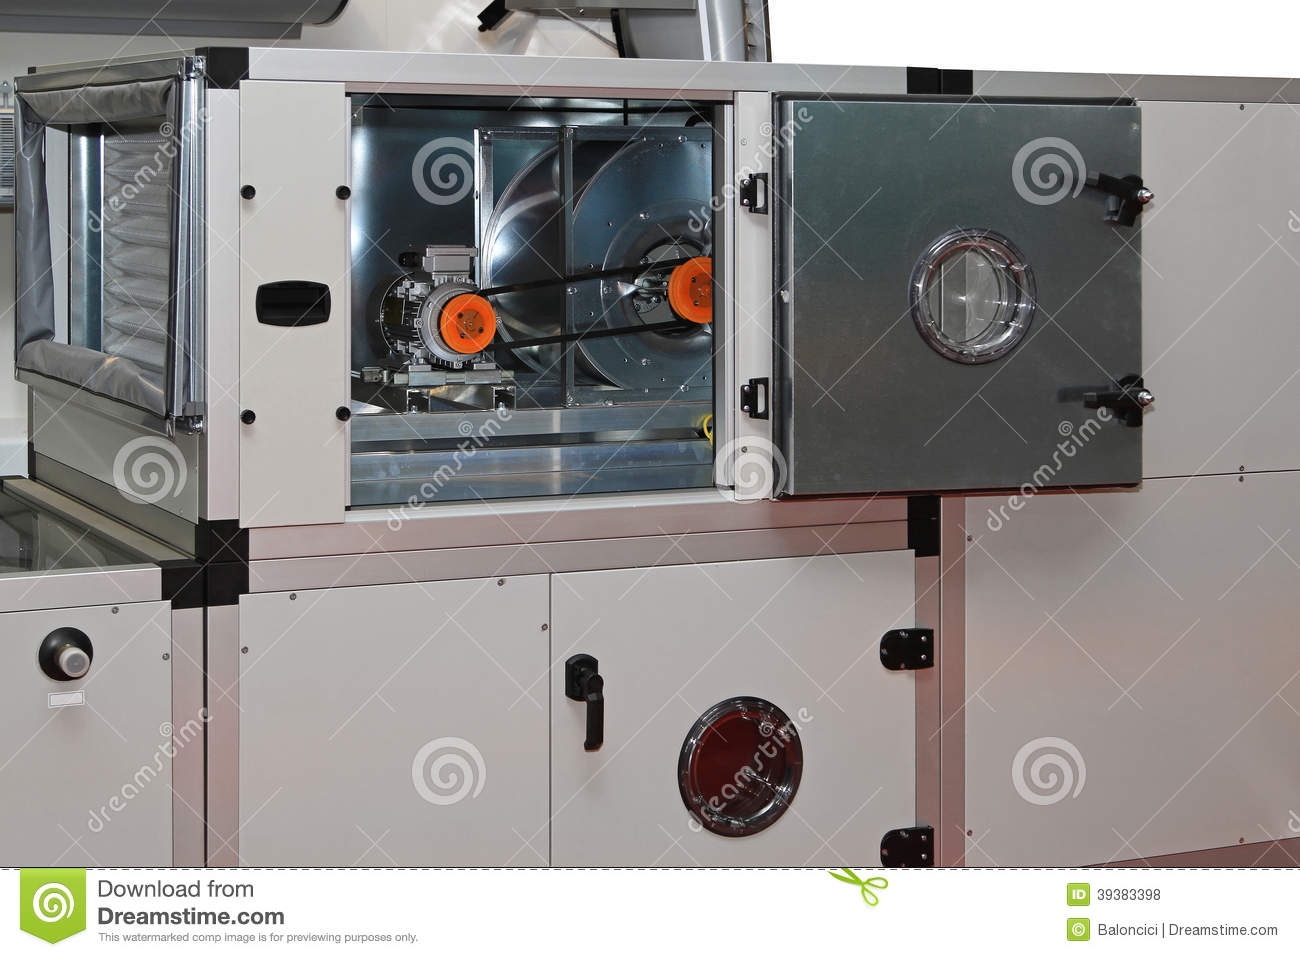 Central Ventilation System : Air handling units stock photos royalty free pictures